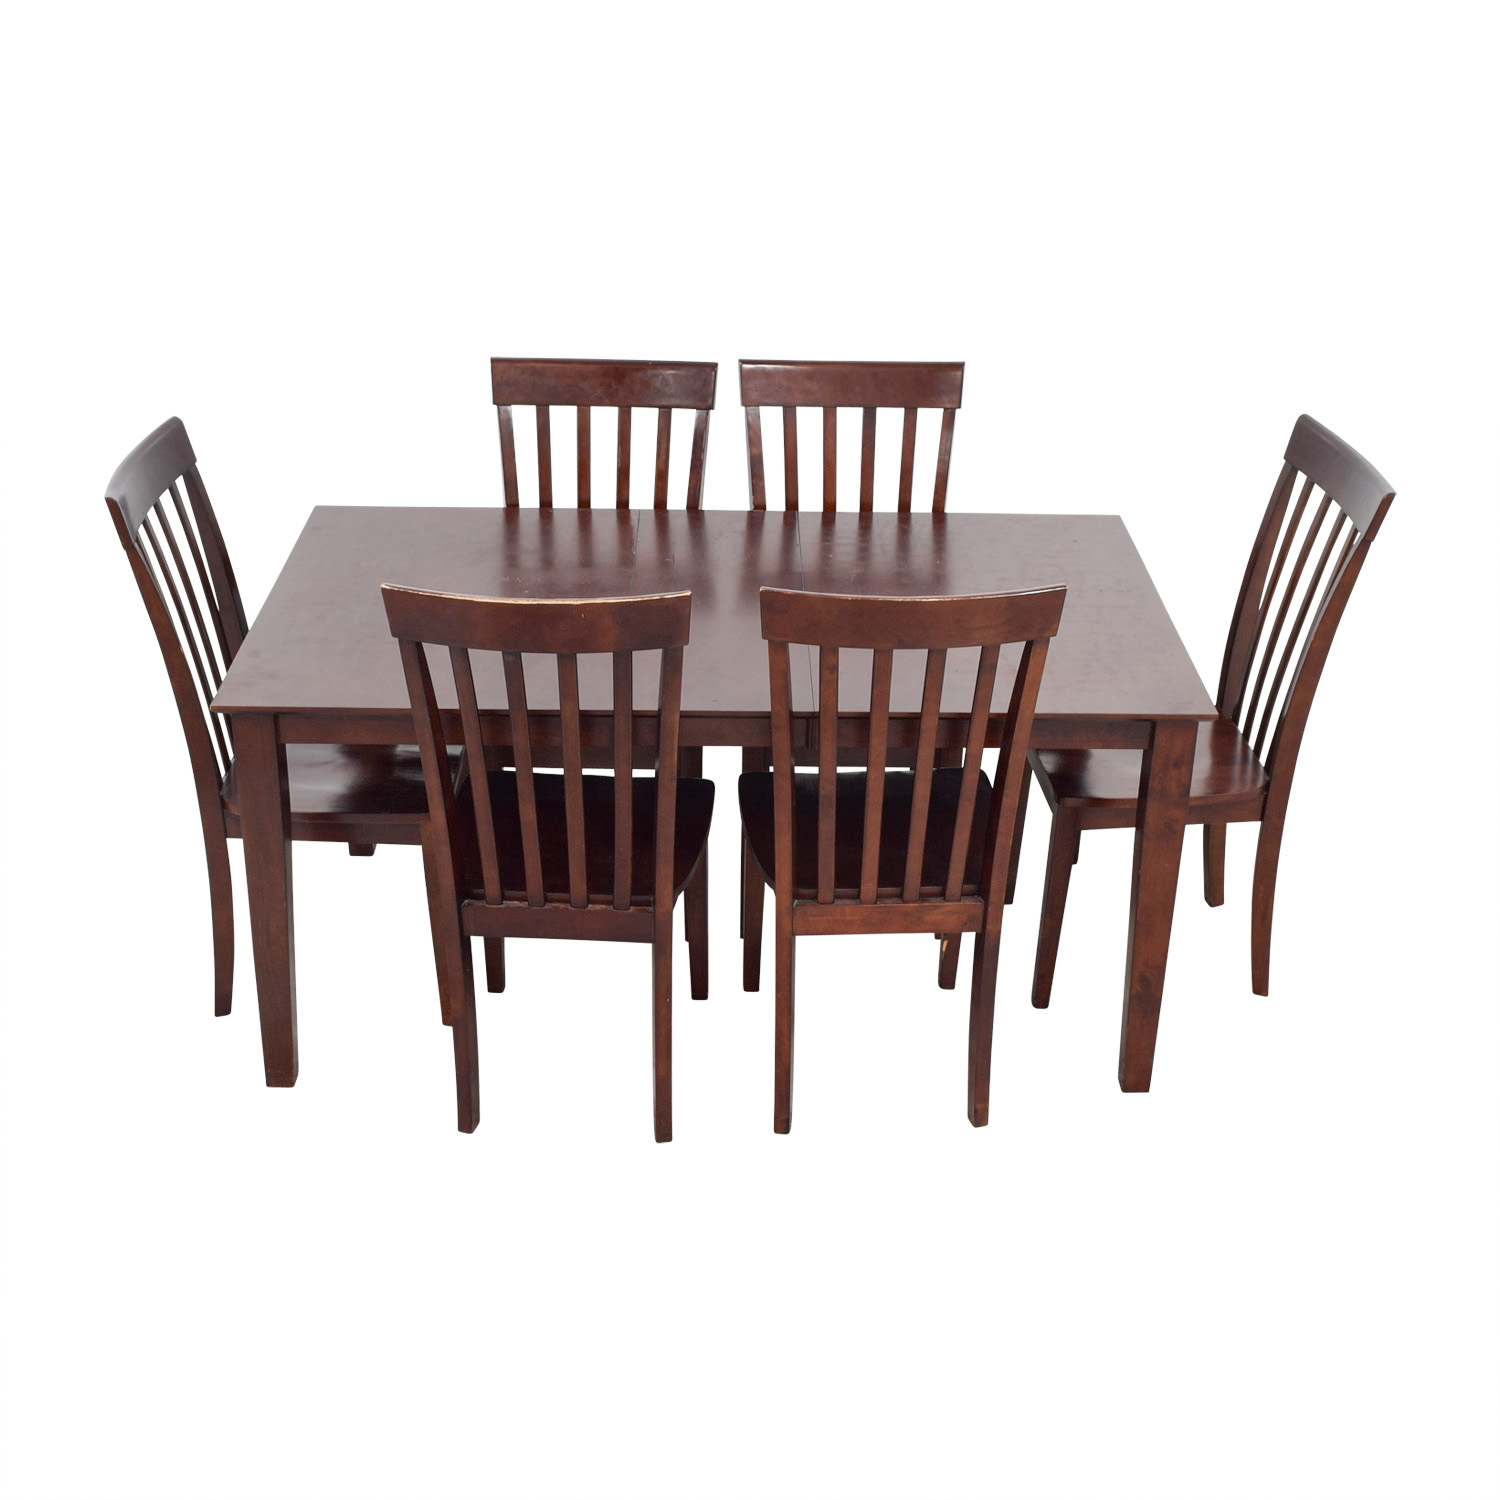 buy Bobs Furniture Dining Room Table and Chairs Bobs Furniture Tables